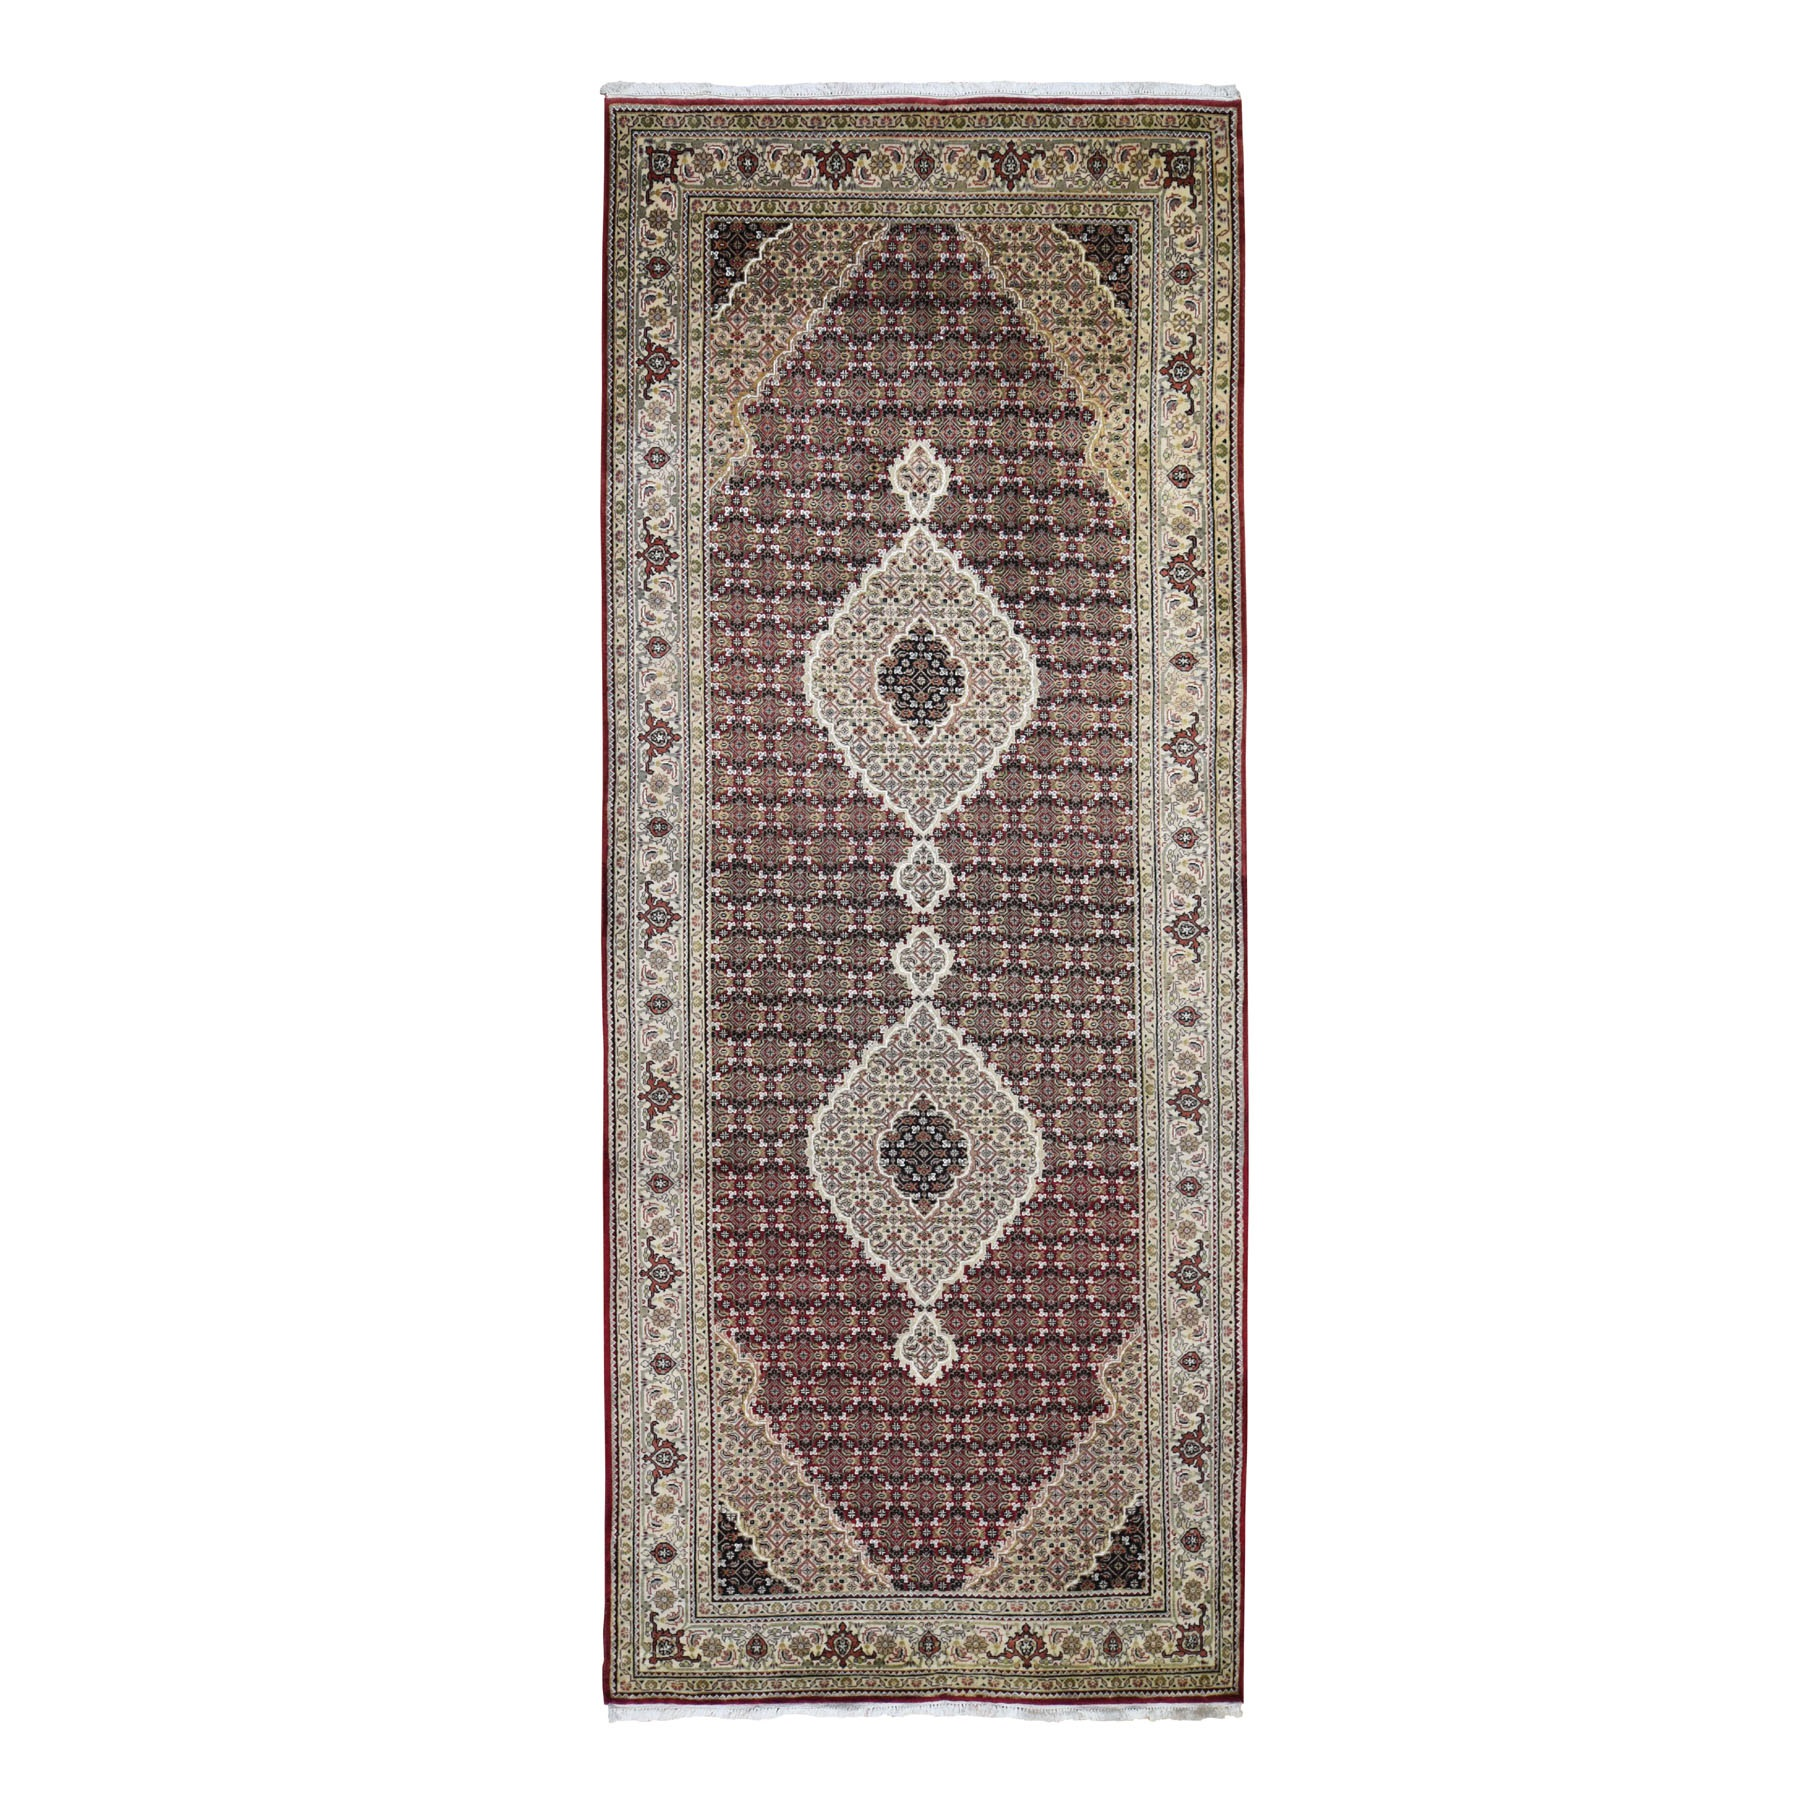 Pirniakan Collection Hand Knotted Red Rug No: 198092